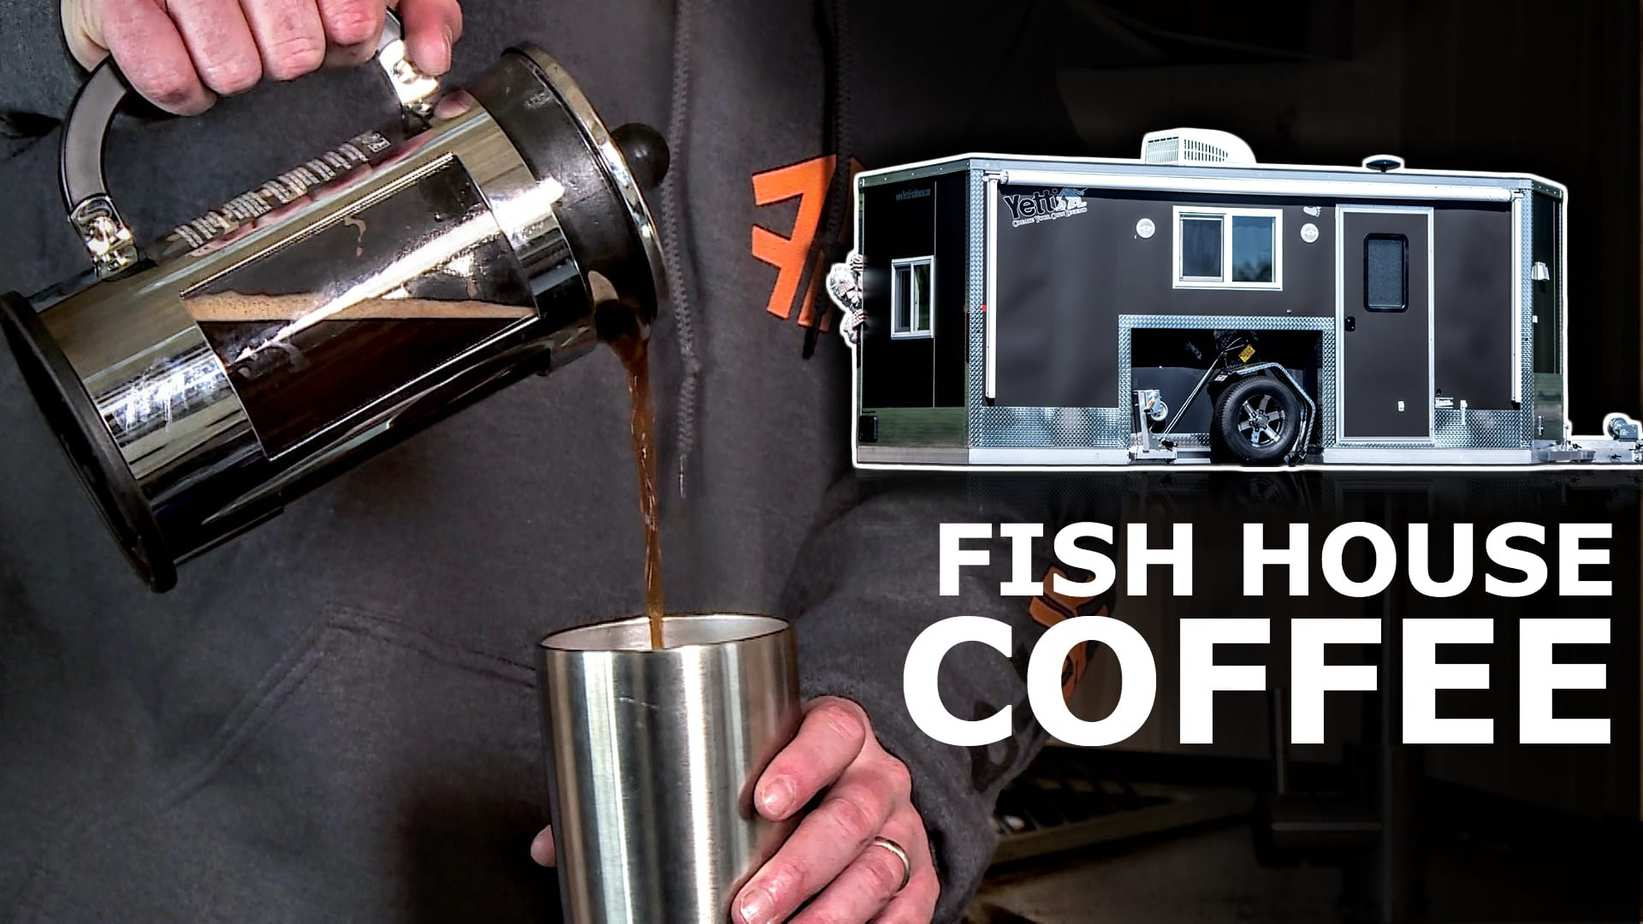 How to make Coffee in an Ice House